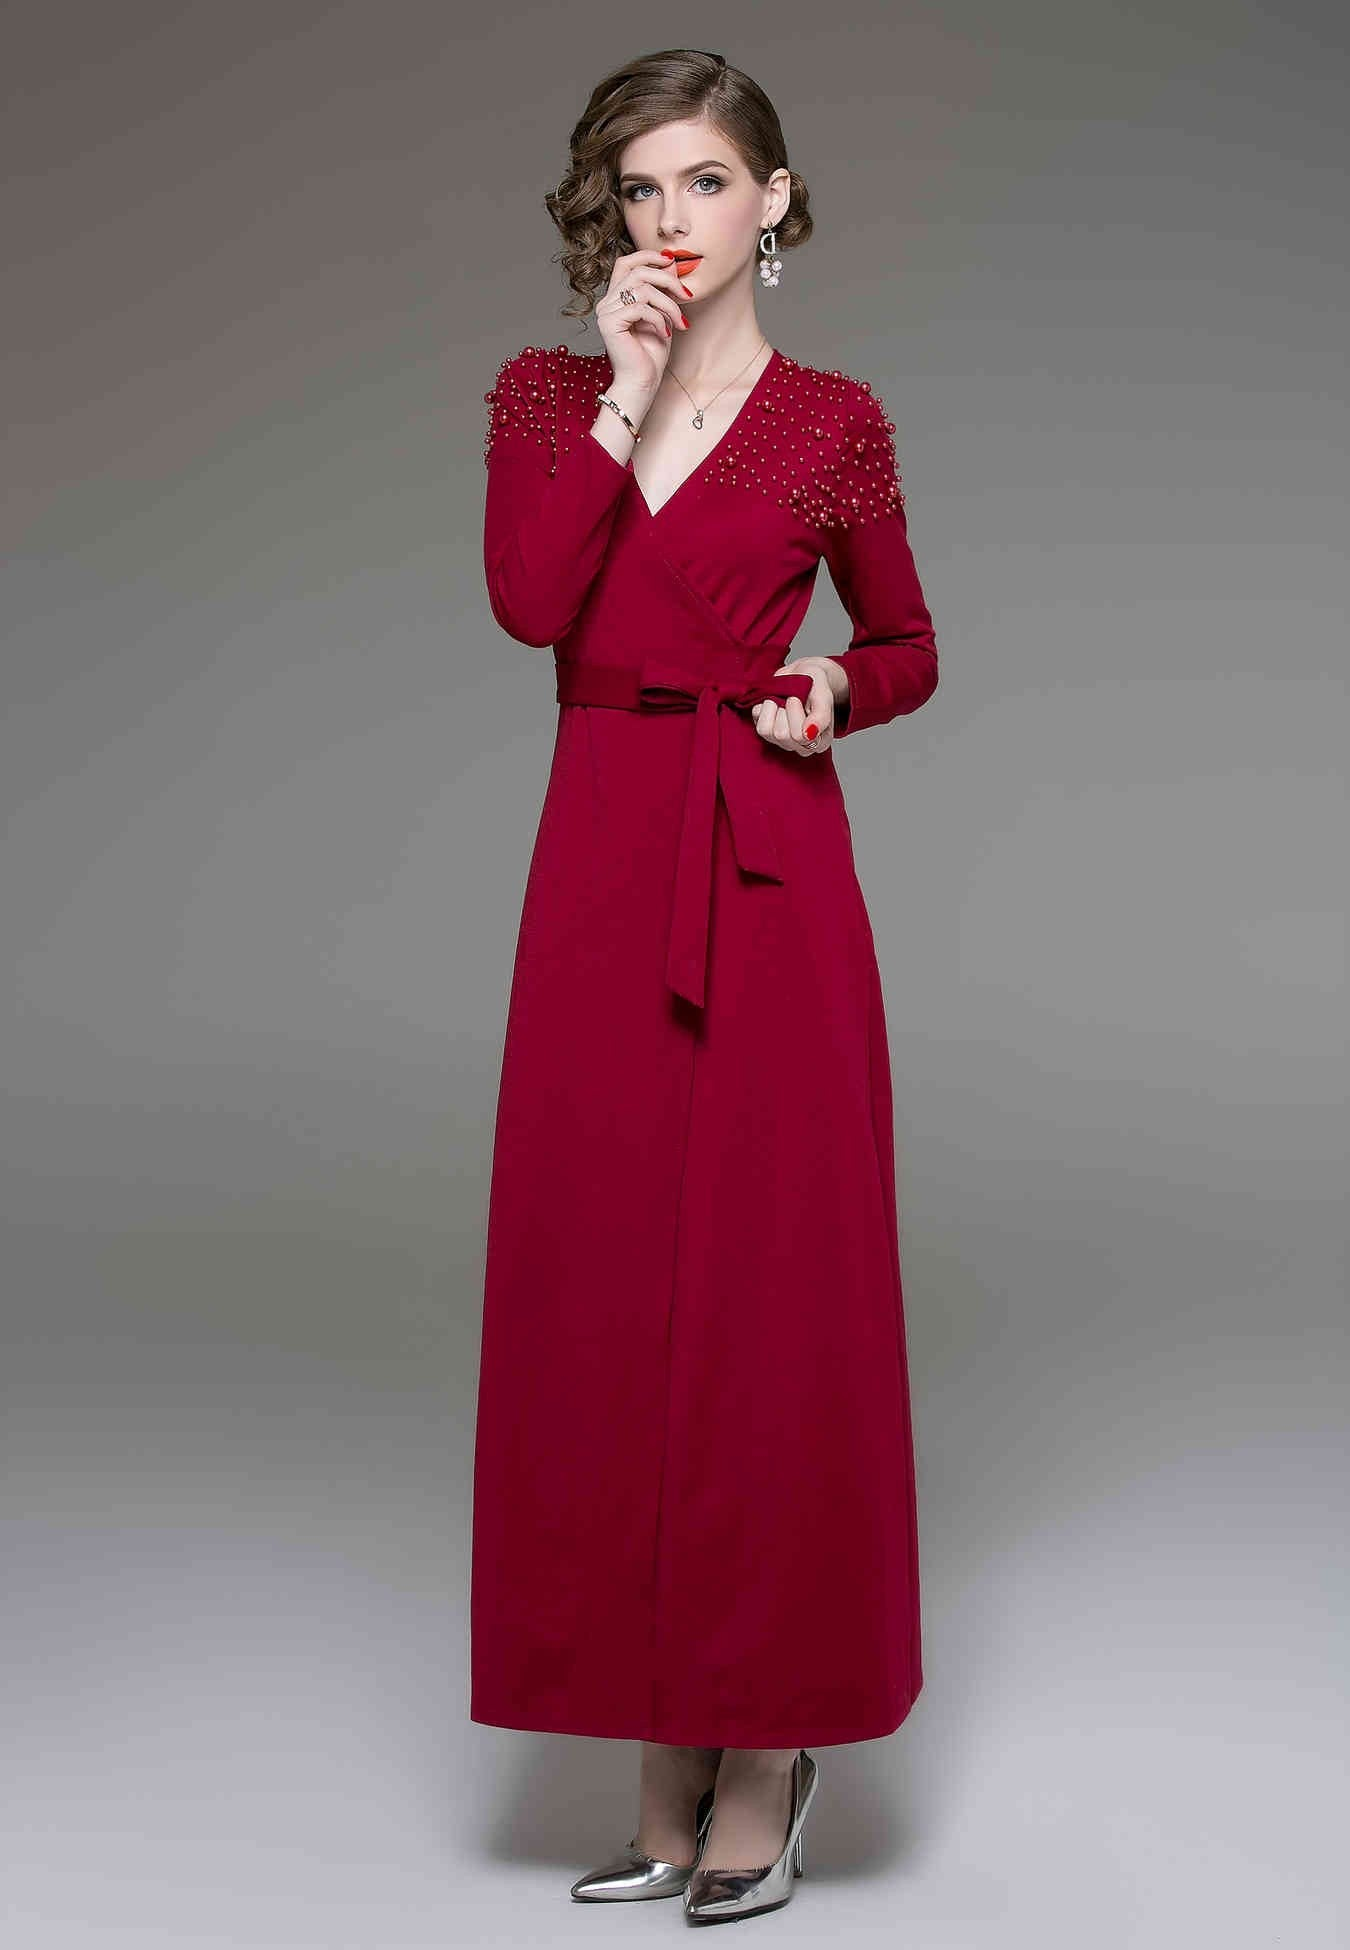 Evening Wrapped V-neck Long Sleeve Tea Dress - ATLASDAY